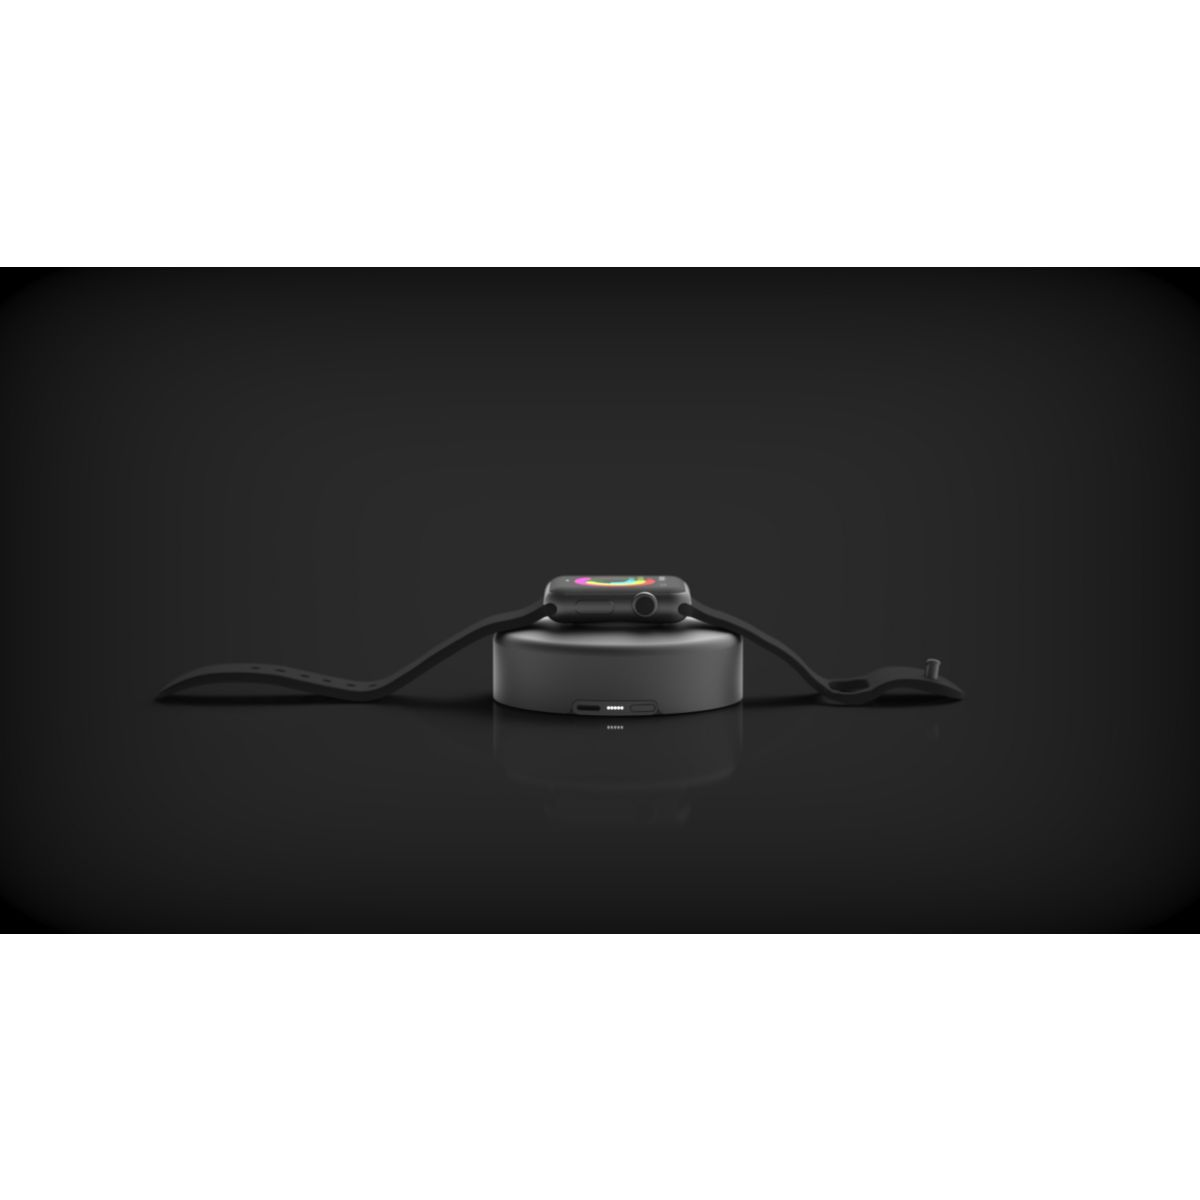 T l phonie gps chargeur induction nomad pod space grey for Meuble chargeur induction